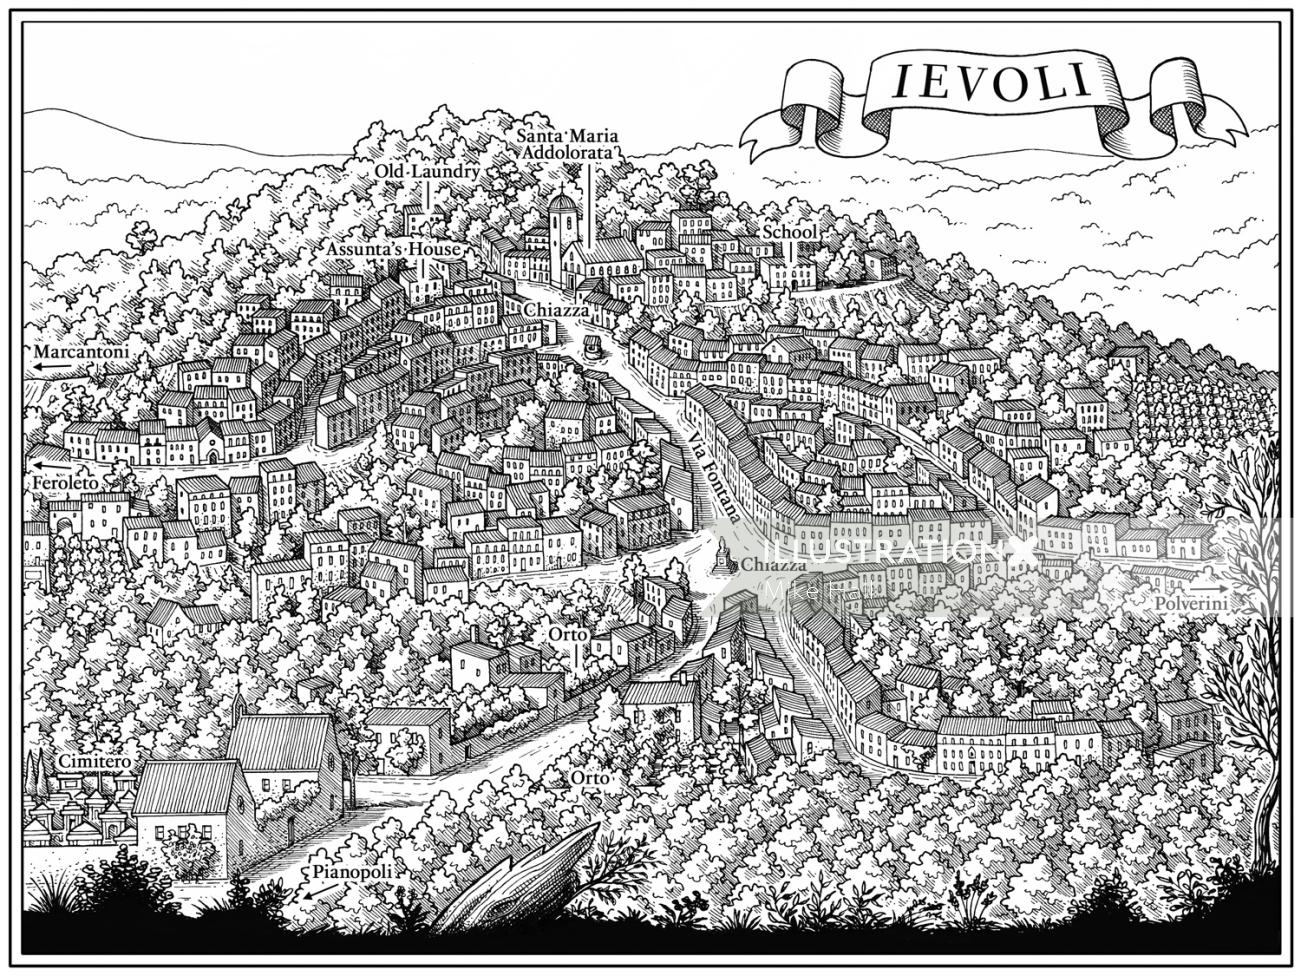 Black and white drawing of Ievoli by Mike Hall